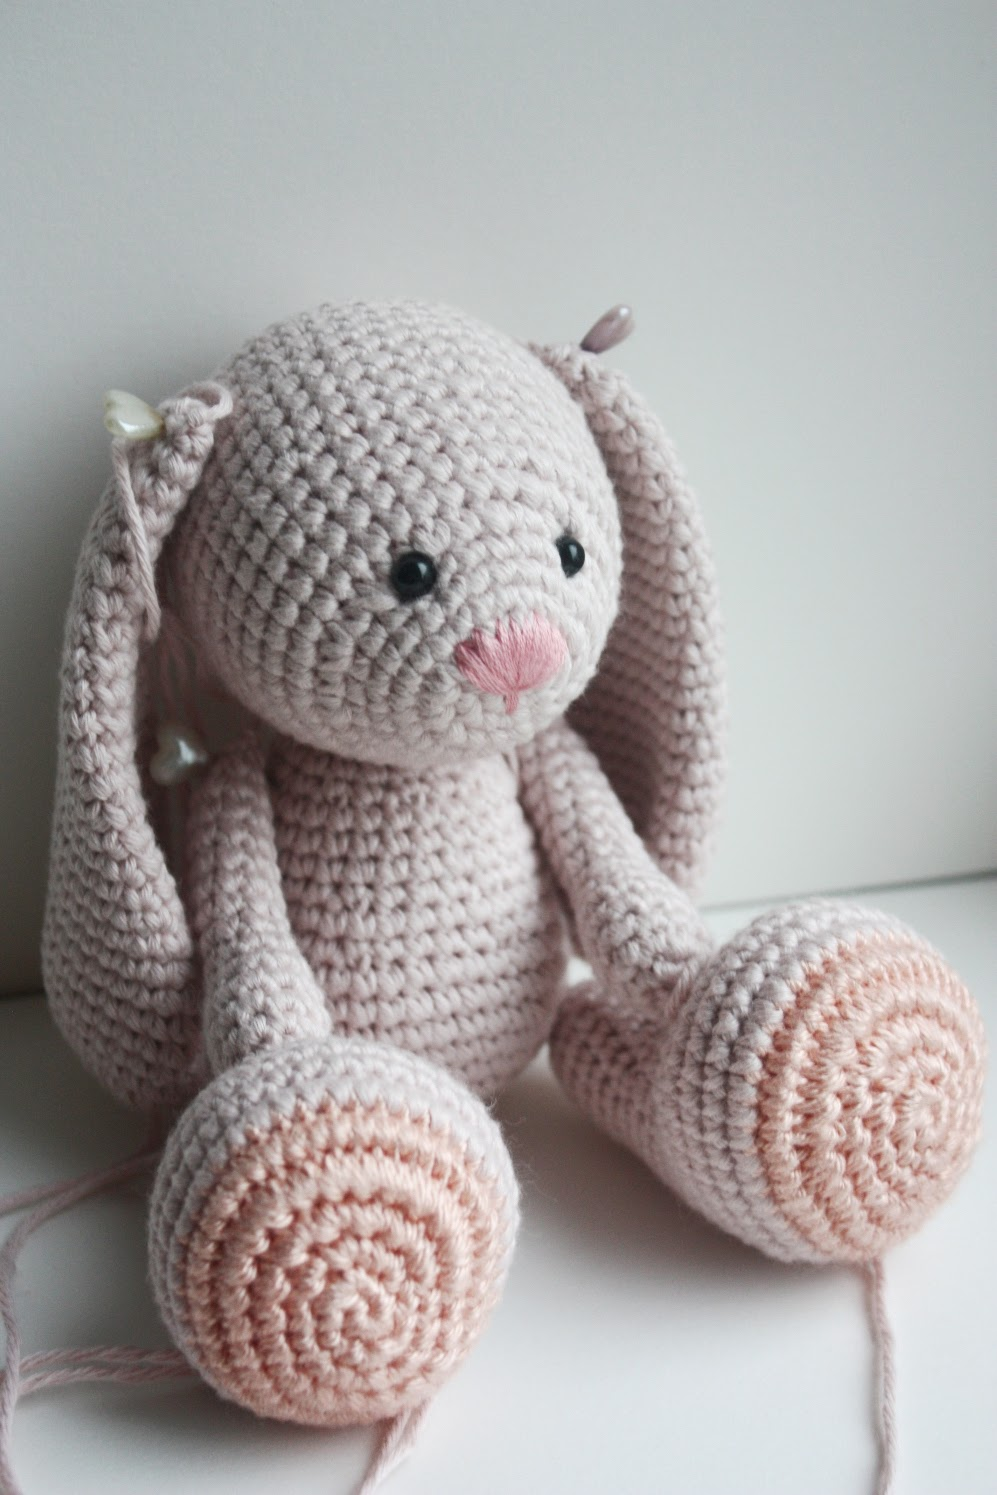 63 Free Crochet Bunny Amigurumi Patterns ⋆ DIY Crafts | 1495x997